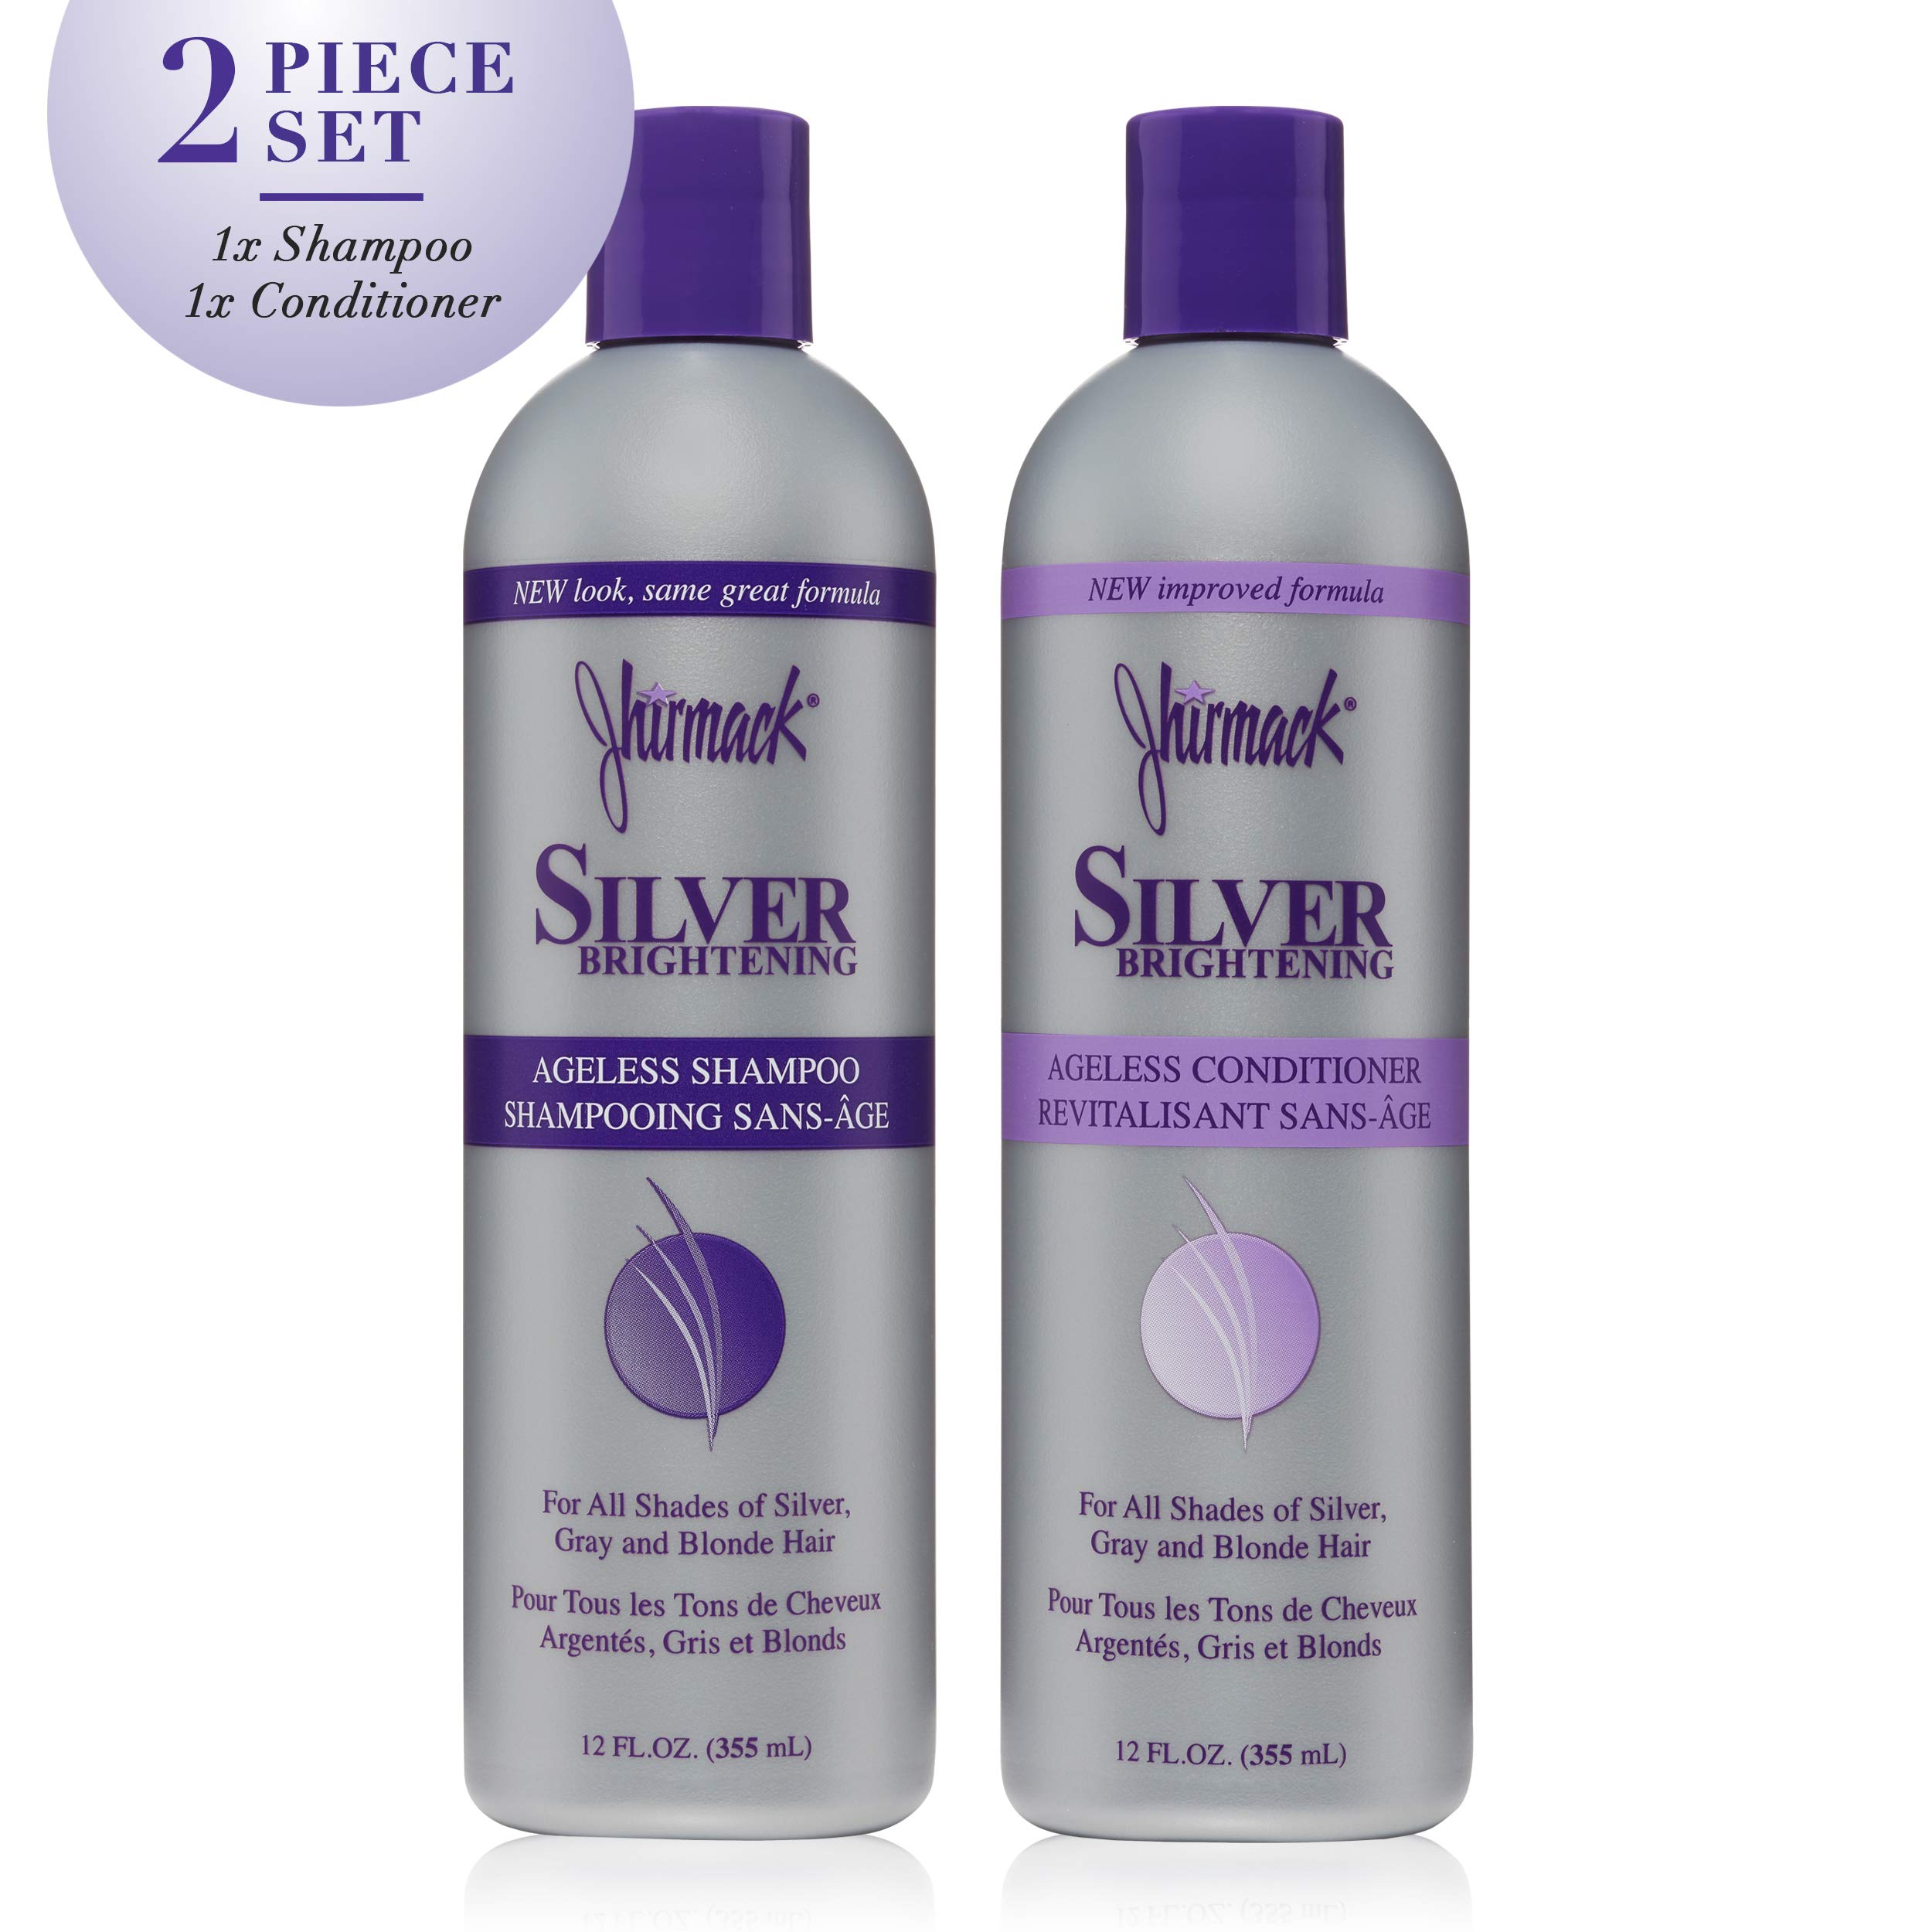 Jhirmack brightening Ageless shampoo conditioner